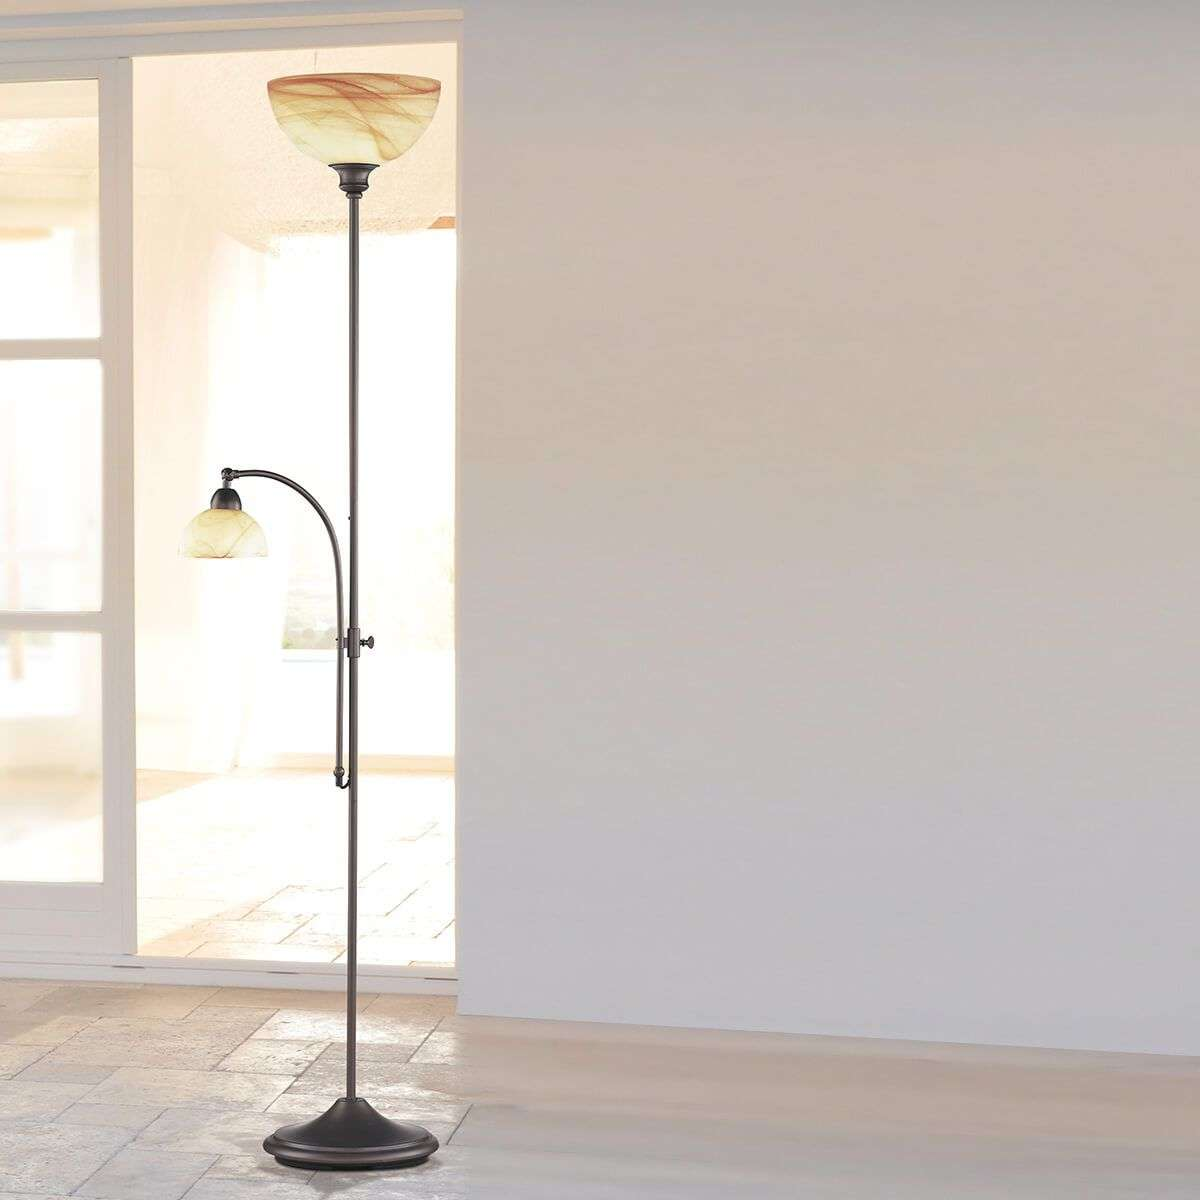 lampadaire lacchino avec variateur pied. Black Bedroom Furniture Sets. Home Design Ideas